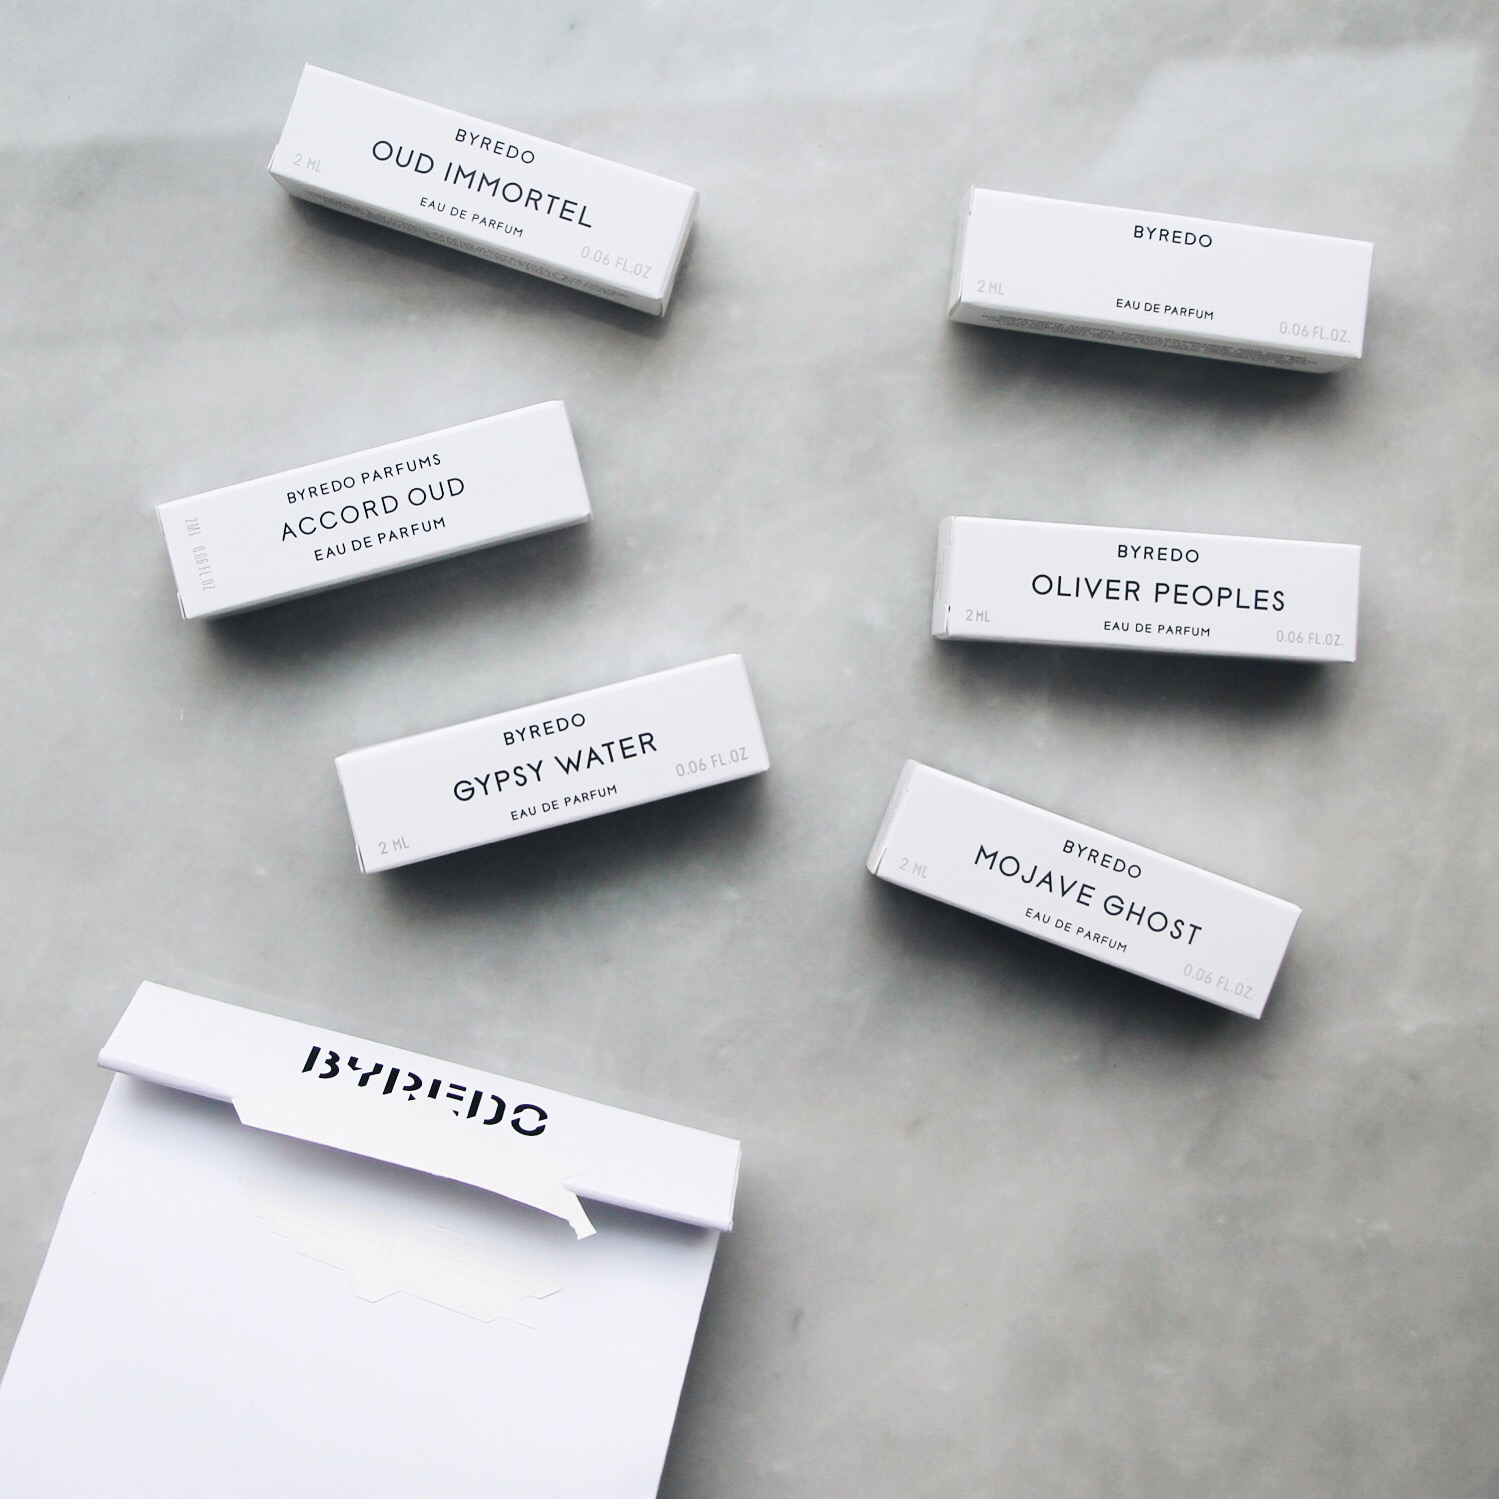 Byredo Gift Bag, Byredo Samples